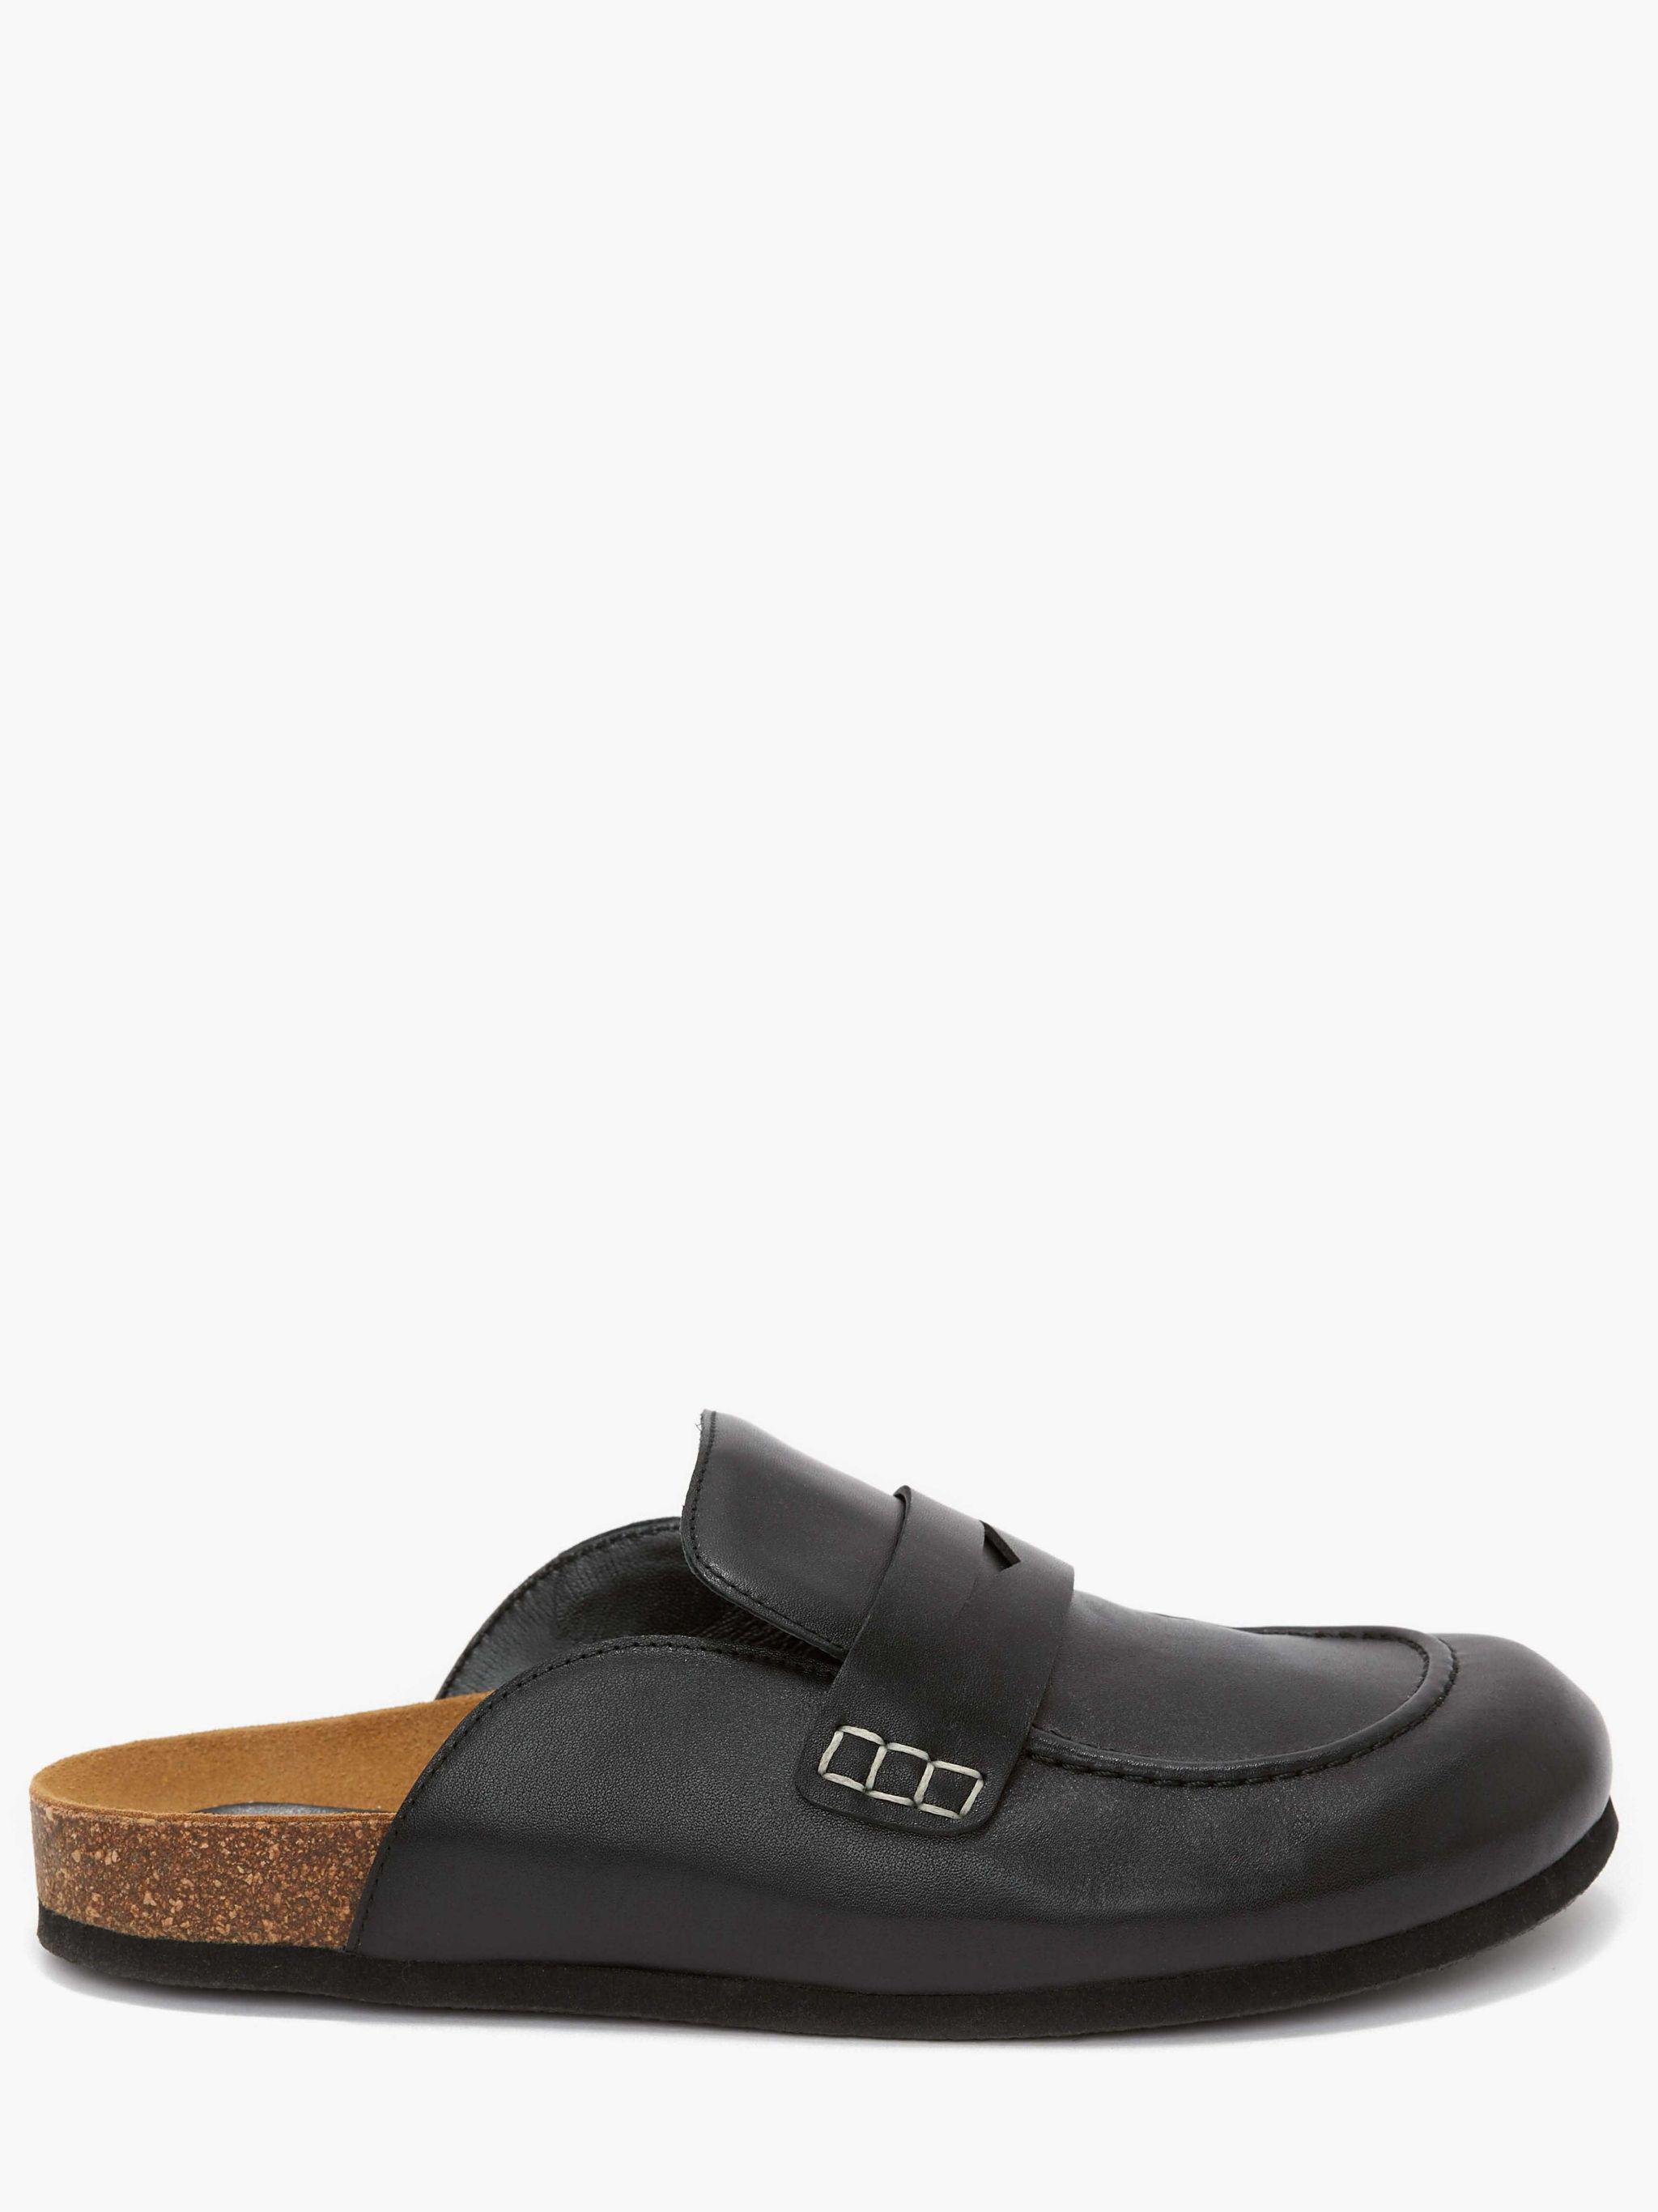 WOMEN'S LEATHER LOAFER MULES